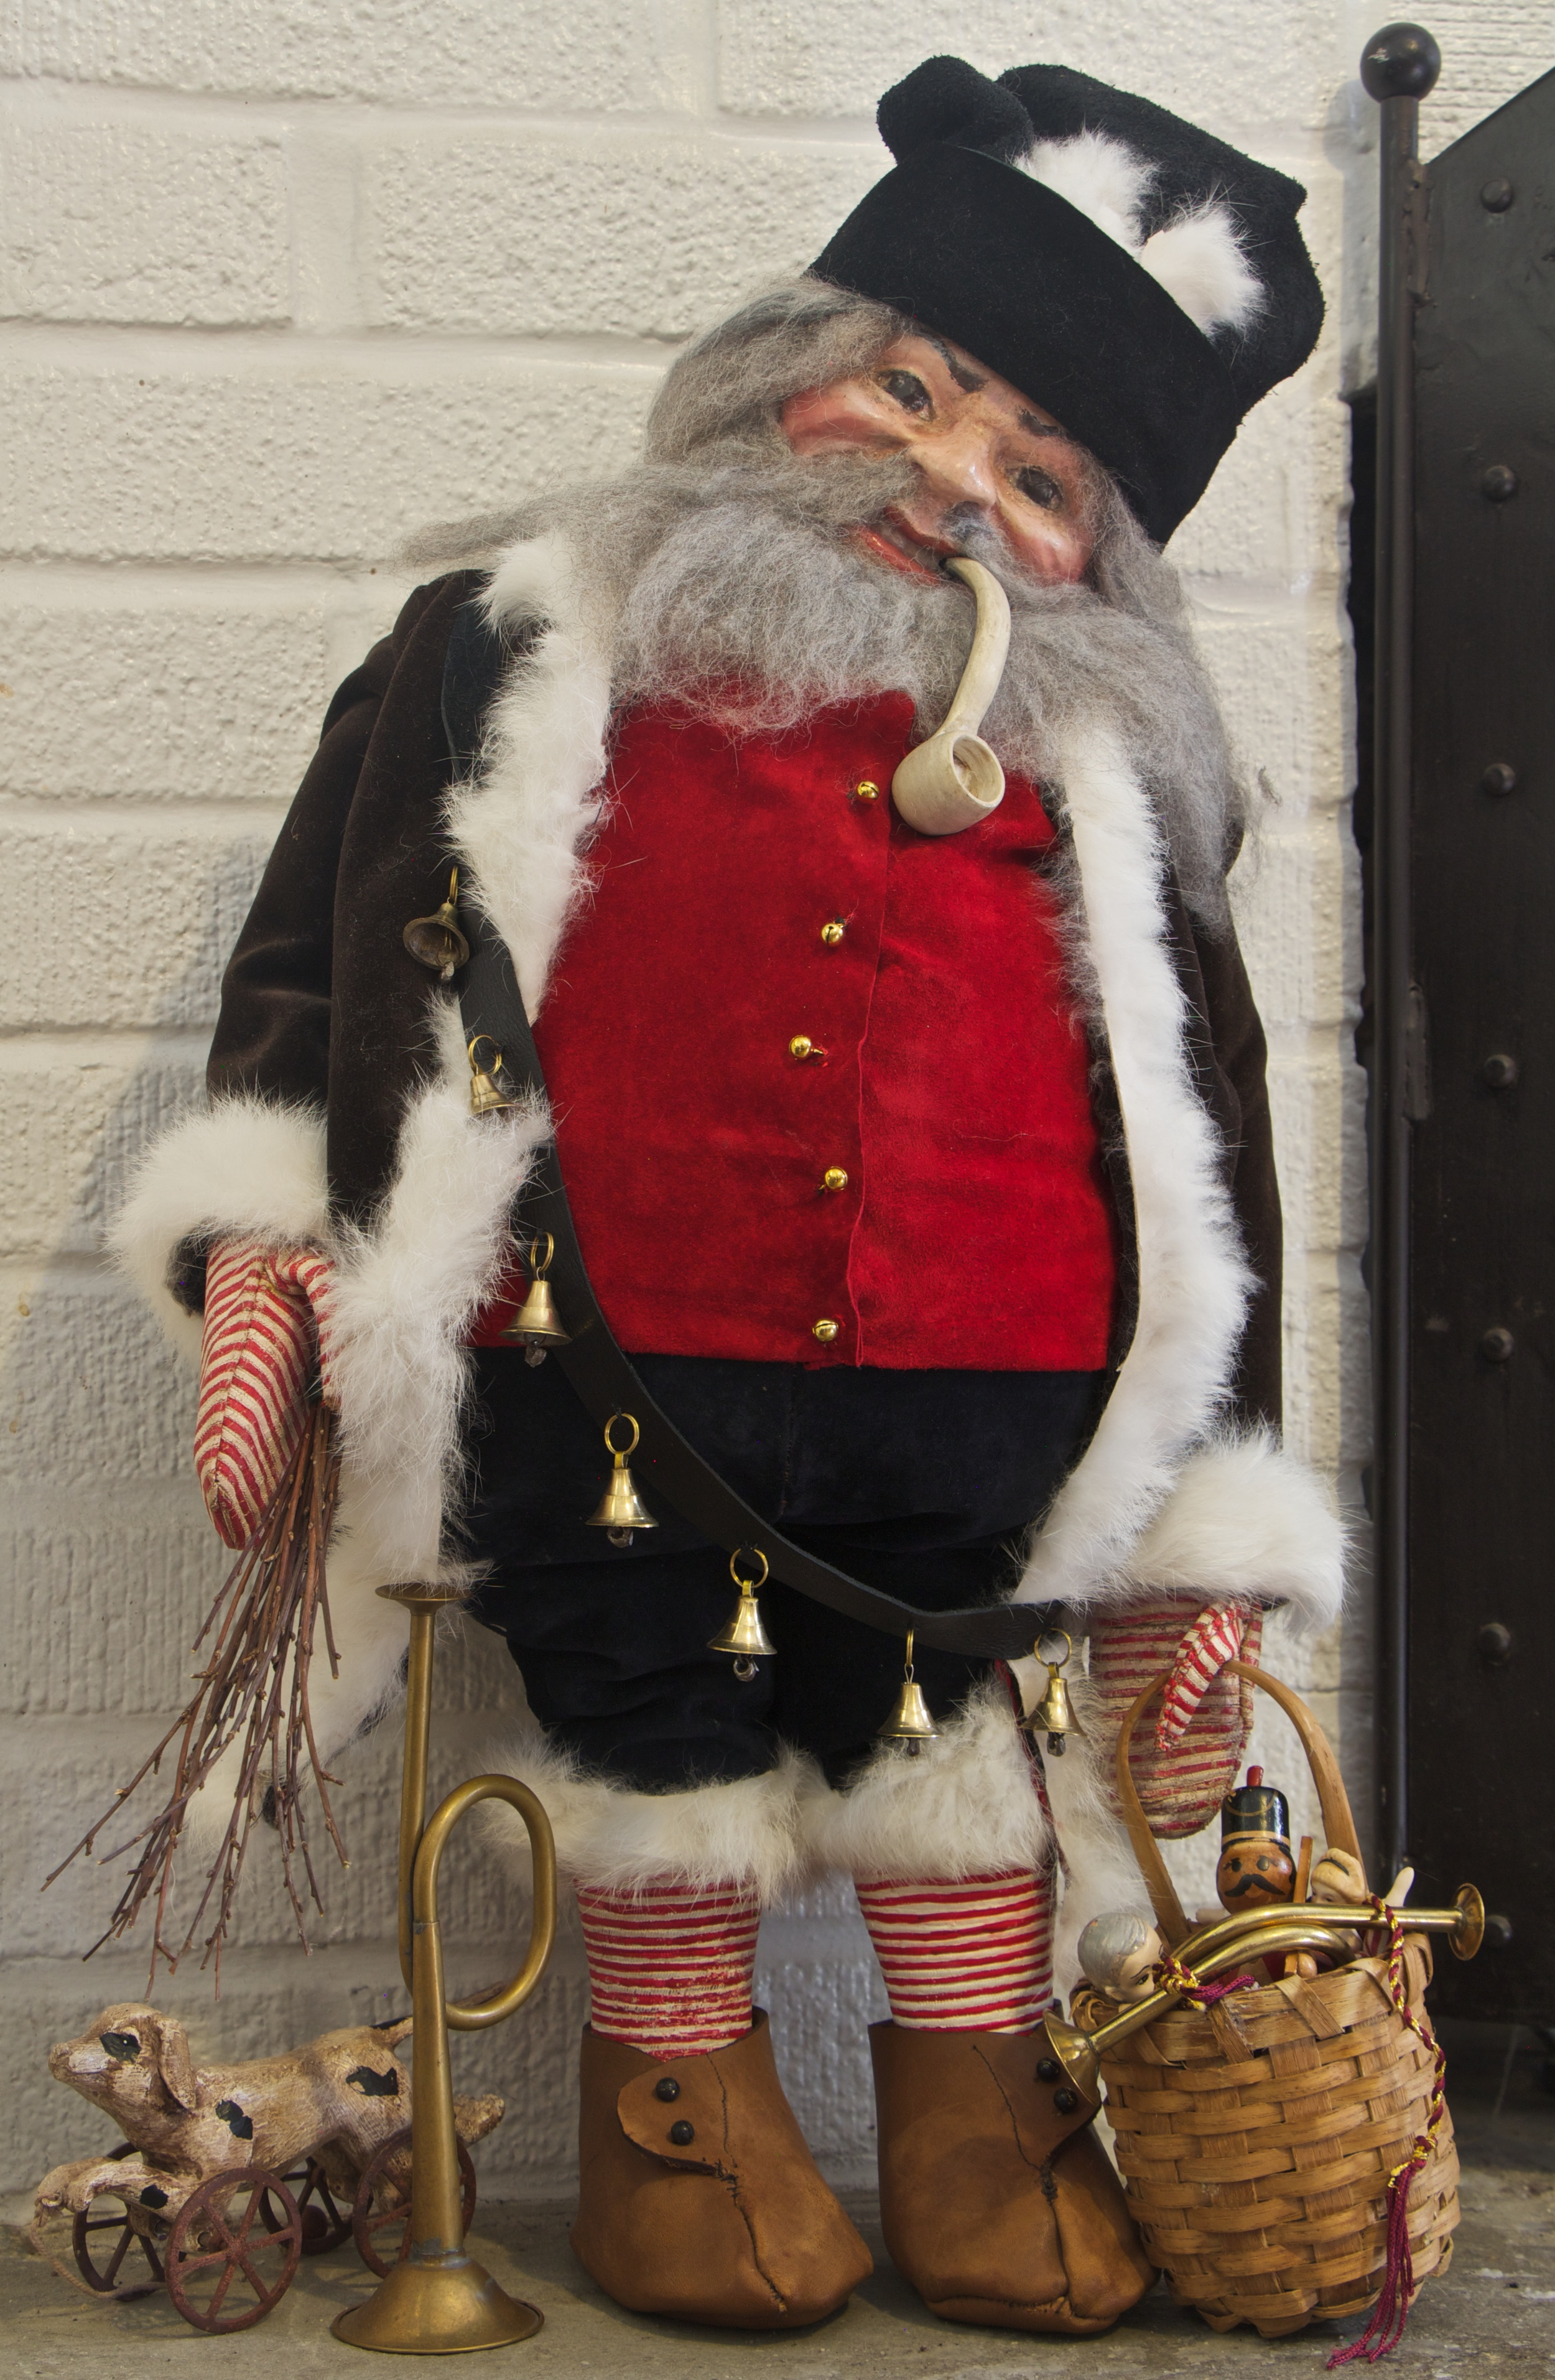 """Belsnickel (sometimes translated """"St. Nicholas dressed in fur"""") was a Christmas gift-giver in early Pennsylvania Dutch communities, making the rounds from farmhouse to farmhouse. Belsnickel brought treats or presents for obedient children, but was ready with a rod or switch to punish naughty ones."""